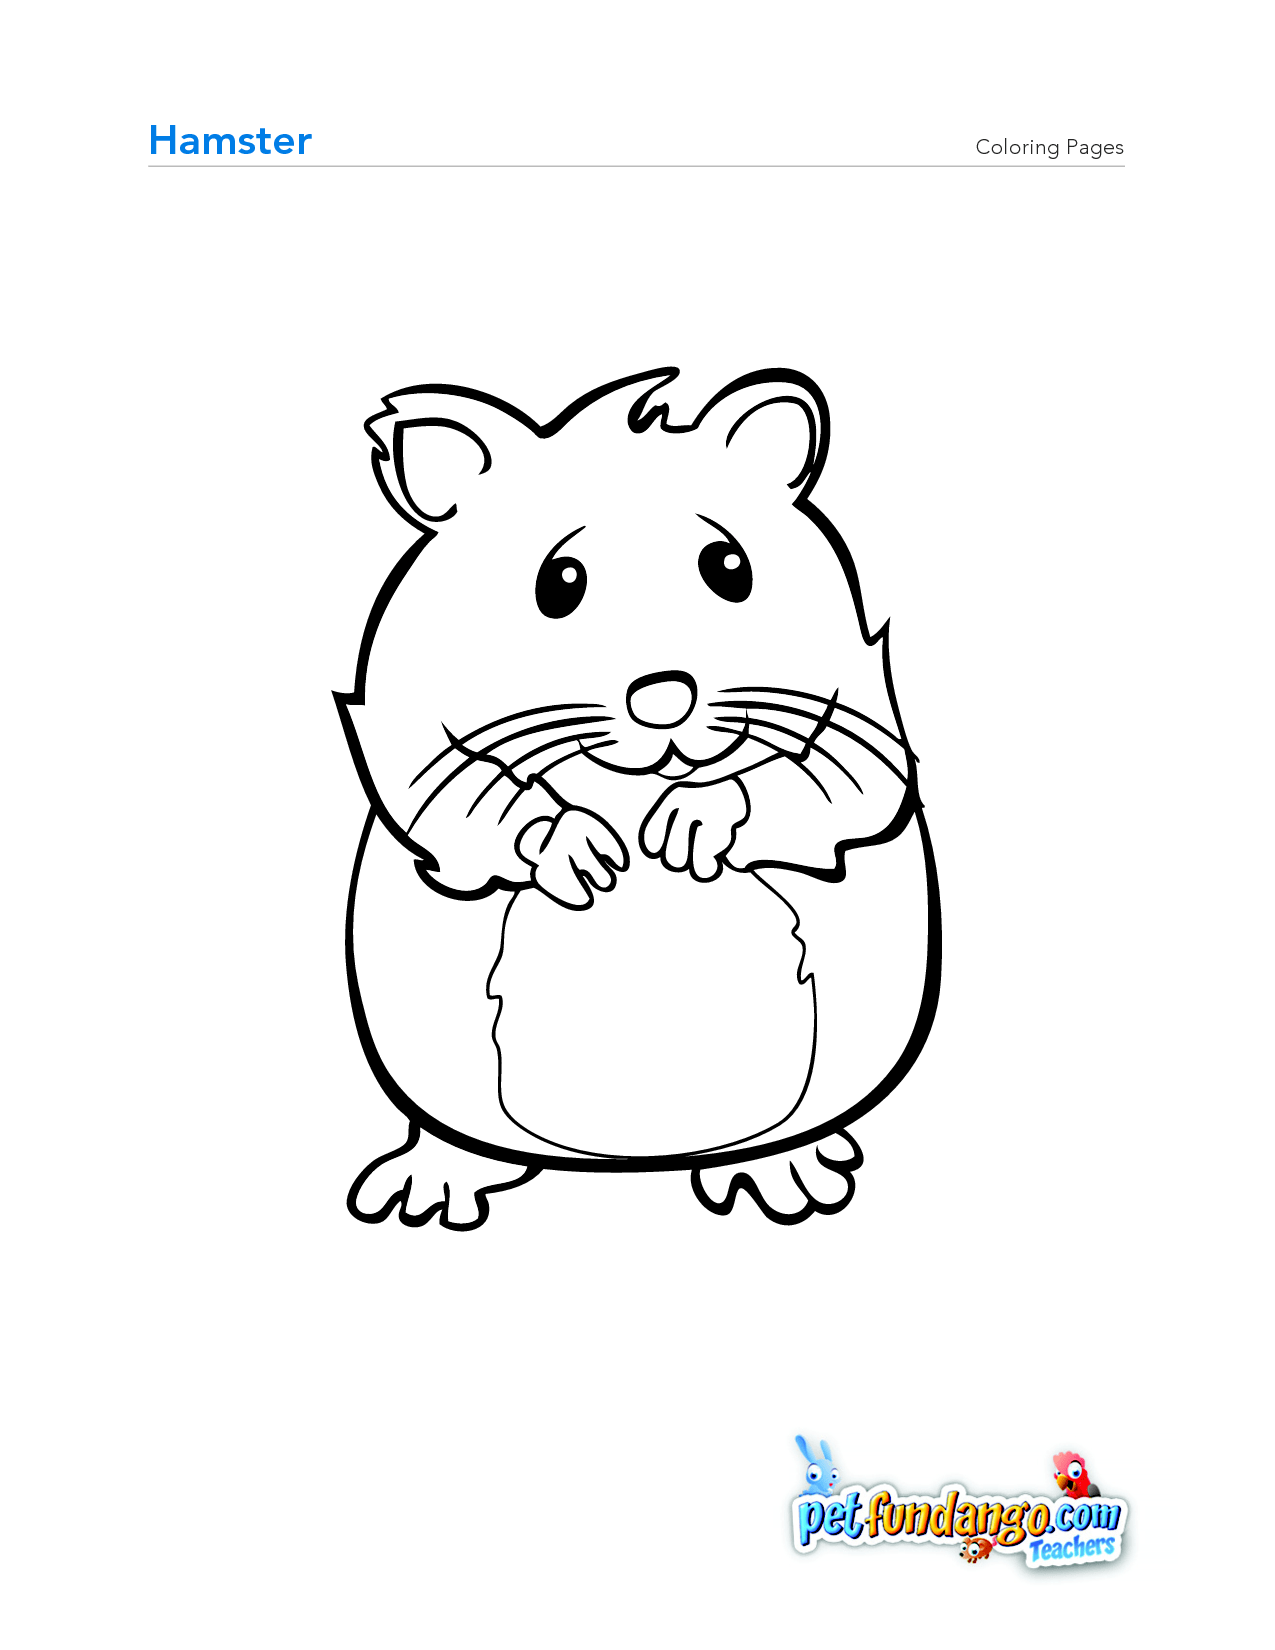 Cute Hamster Drawing At Getdrawings